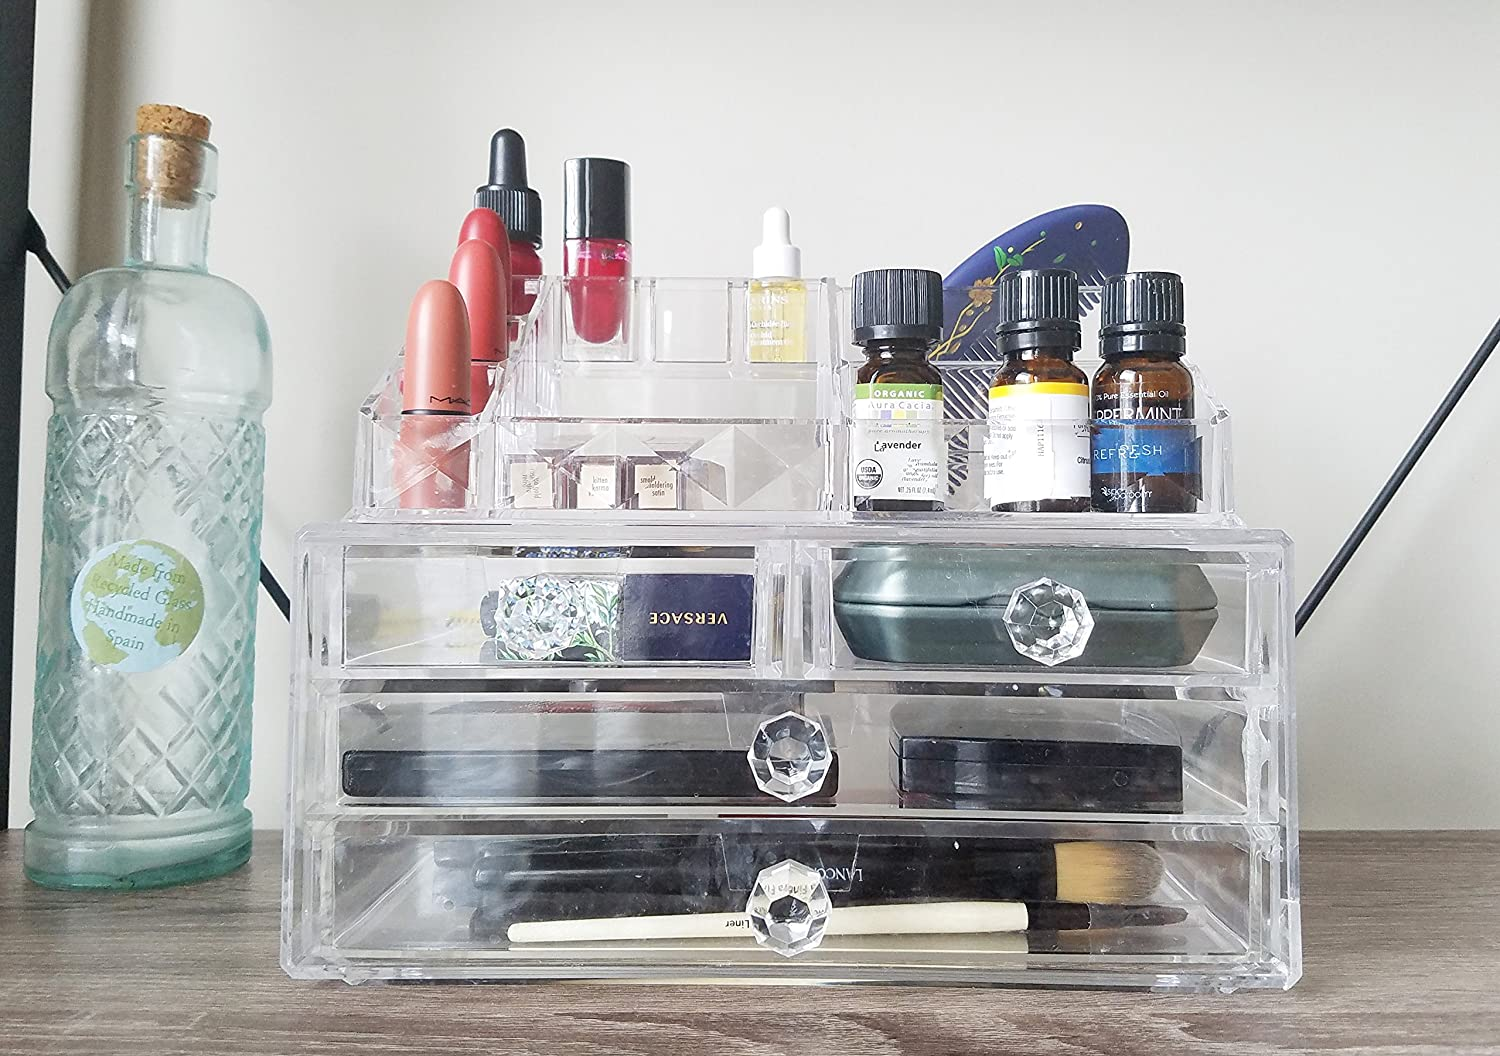 Charming Amazon.com: 2 Piece Cosmetic Makeup Organizer Drawer And Tray Combo U2013 9.4 X  6.1 X 7.2 Inches   Clear Acrylic   By Organizer Solutions: Beauty